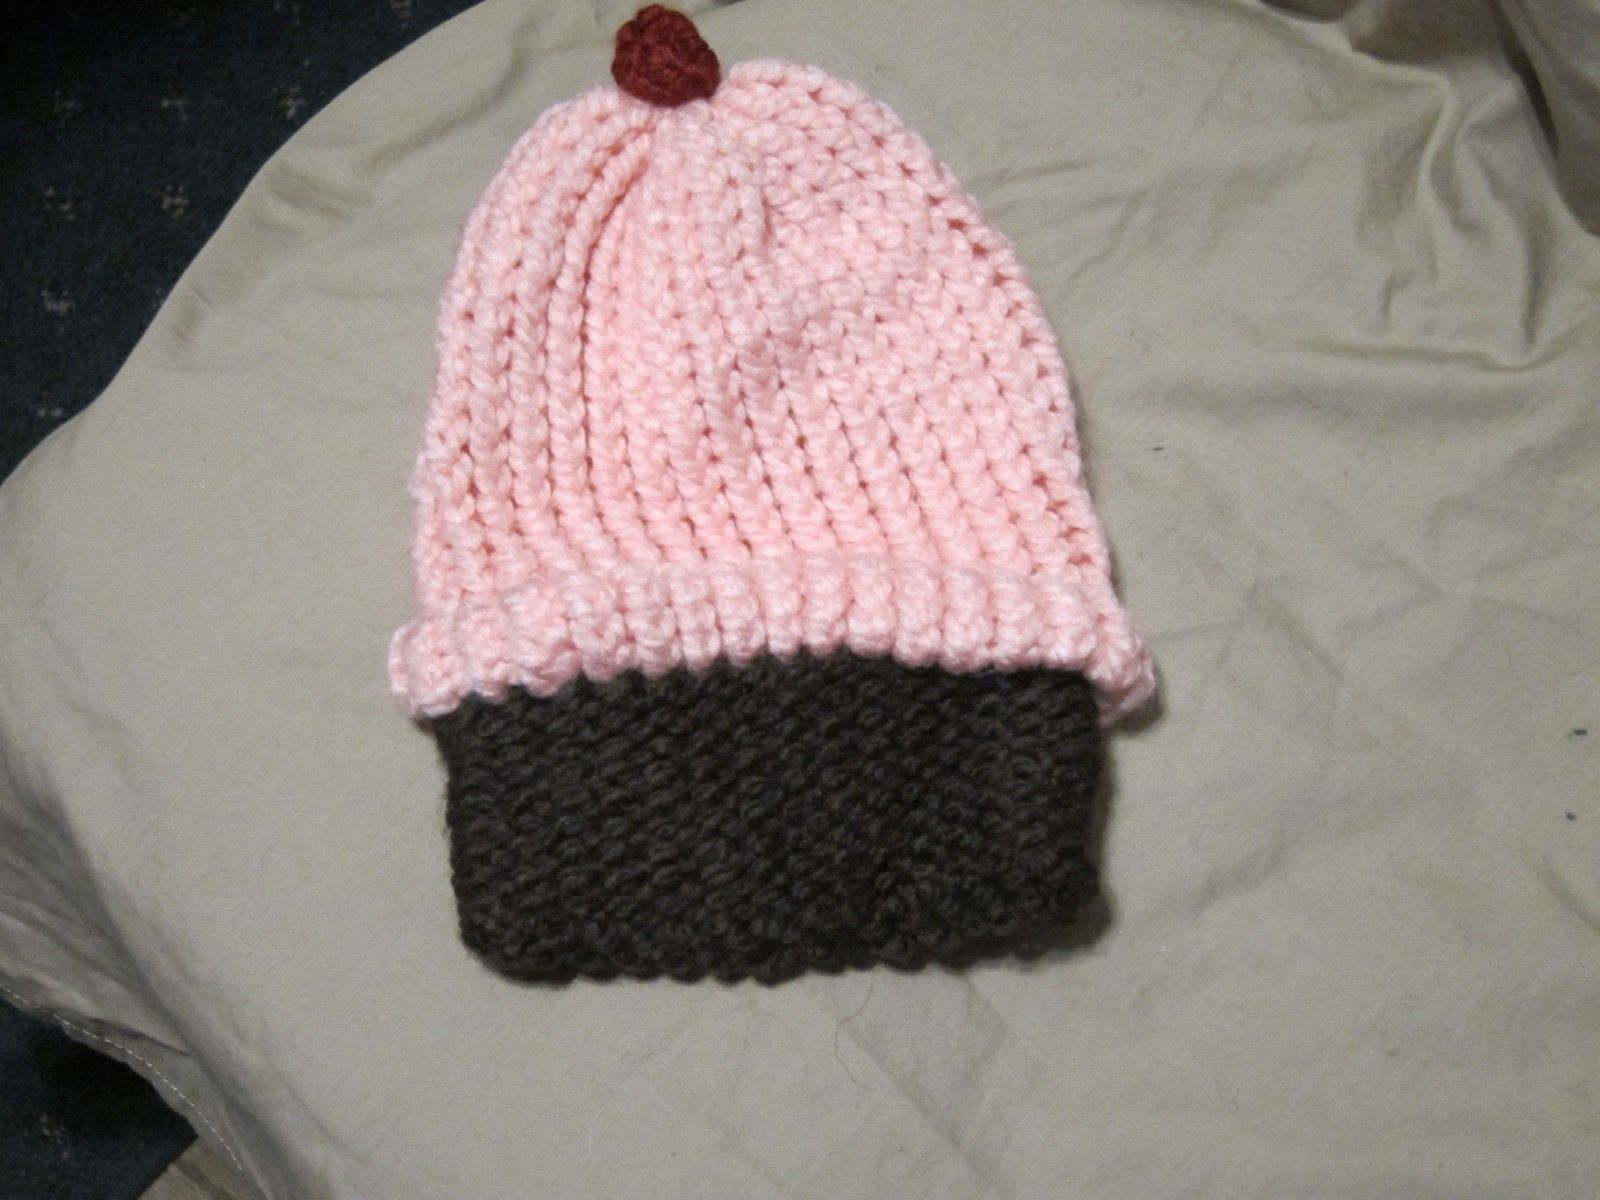 Handmade Knitted Pink Cupcake Infant Winter Hat Cap CUTE